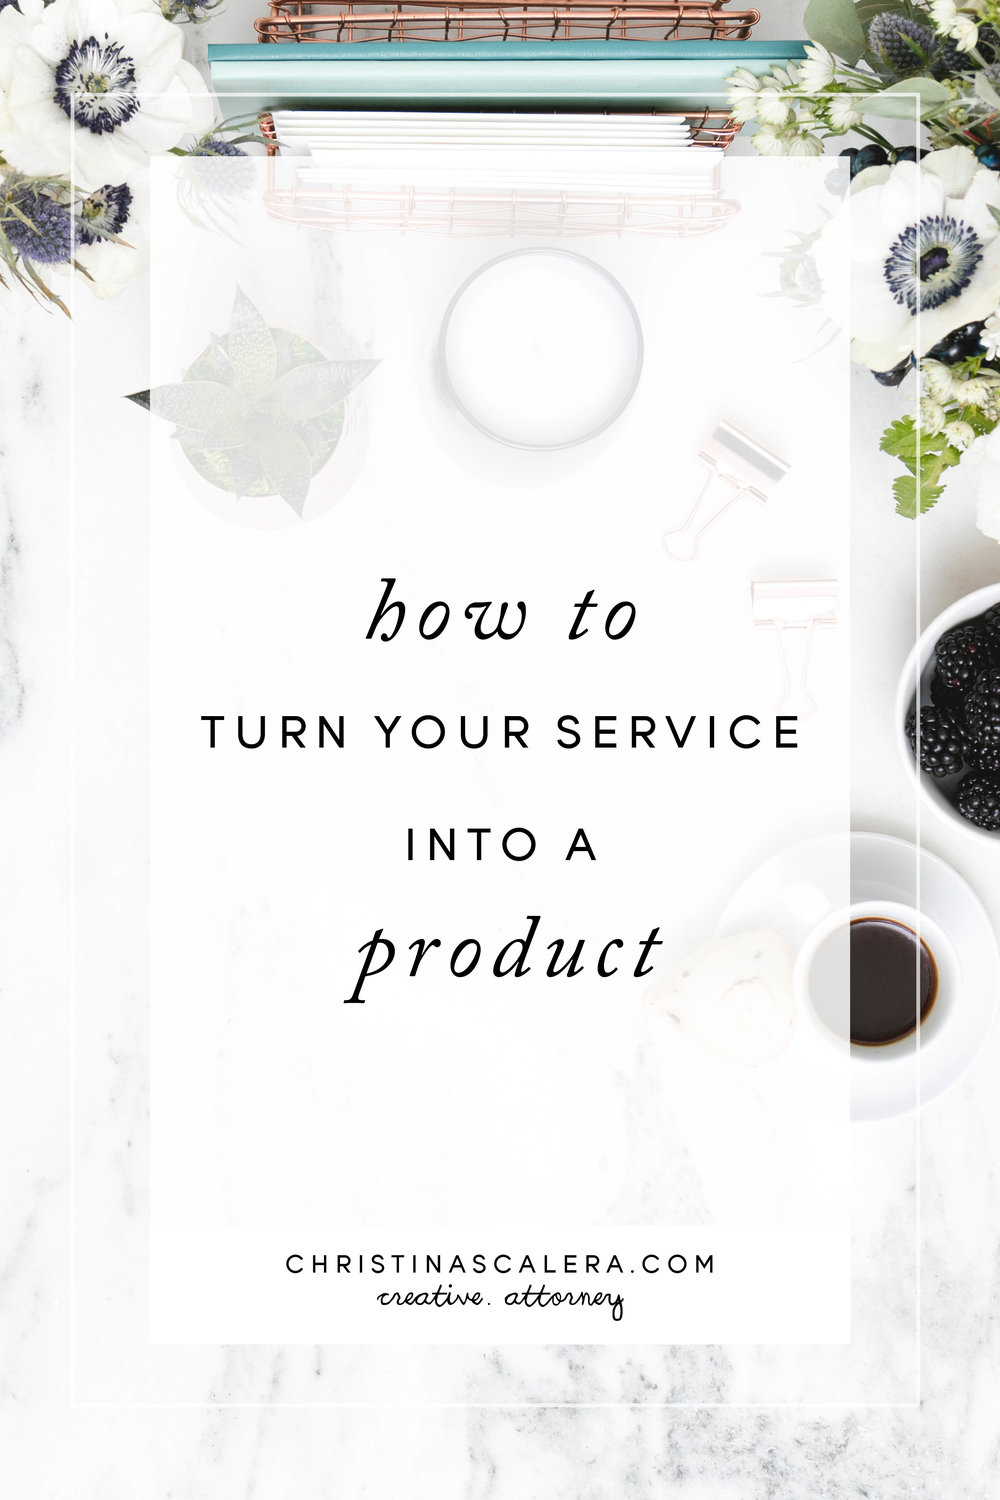 How To Turn Your Service Into A Product!